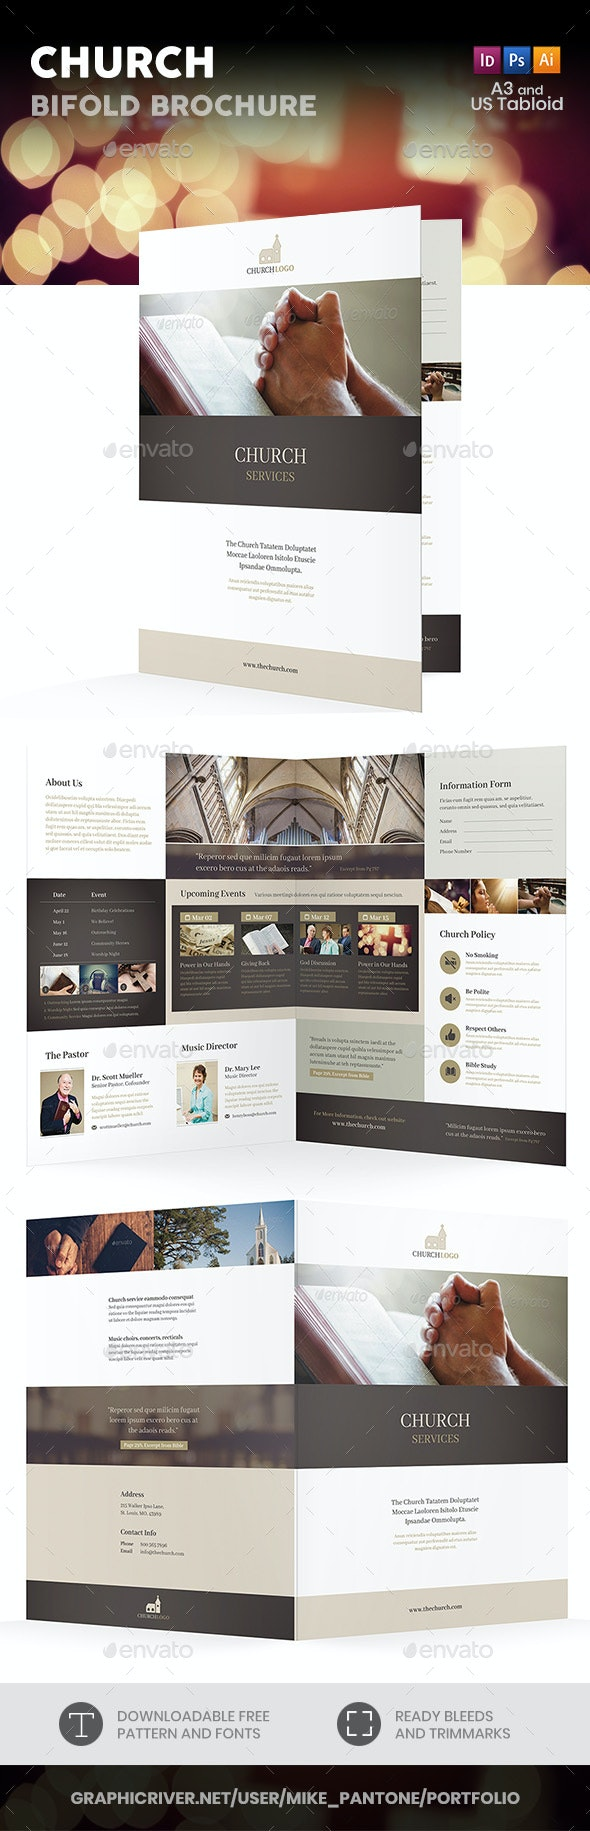 Church Bifold / Halffold Brochure 4 - Informational Brochures